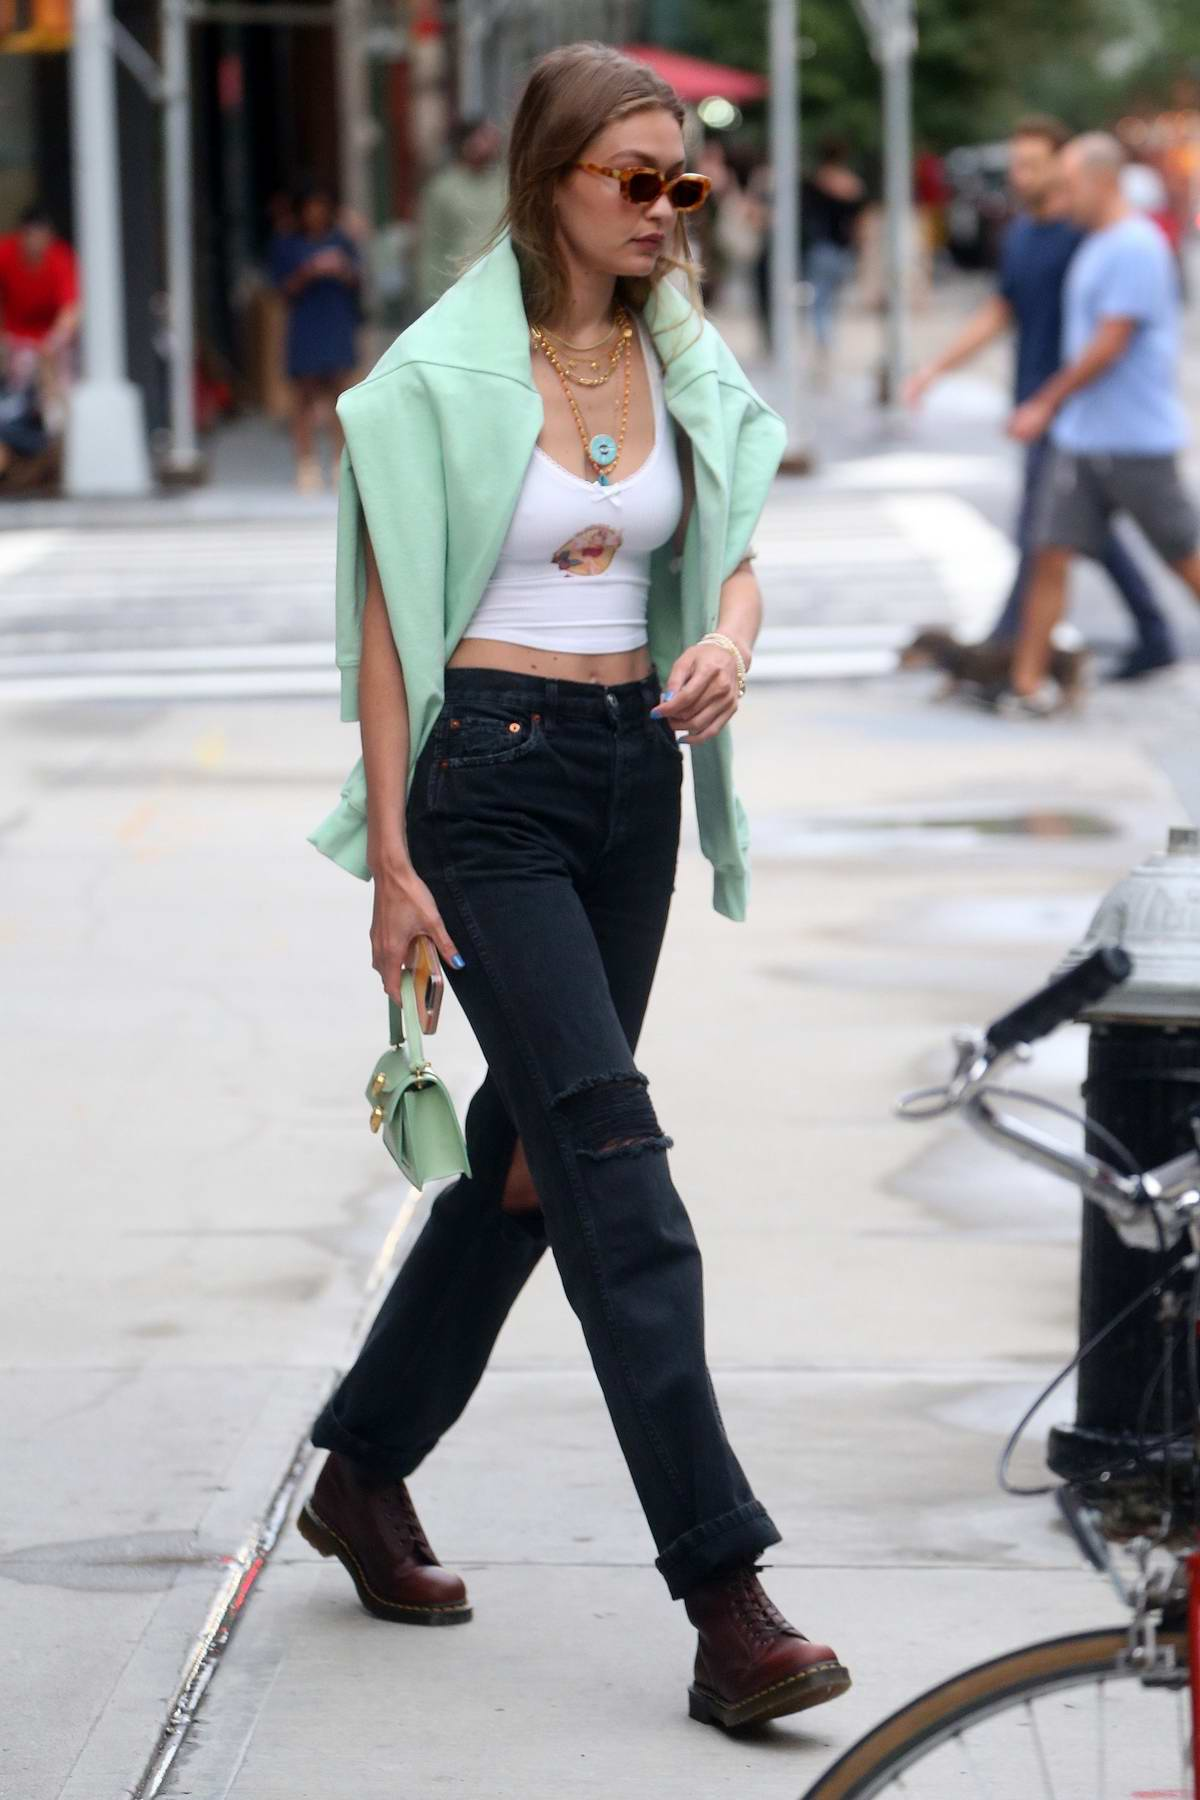 Gigi Hadid flashes her toned abs in a crop top as she steps out in New York City